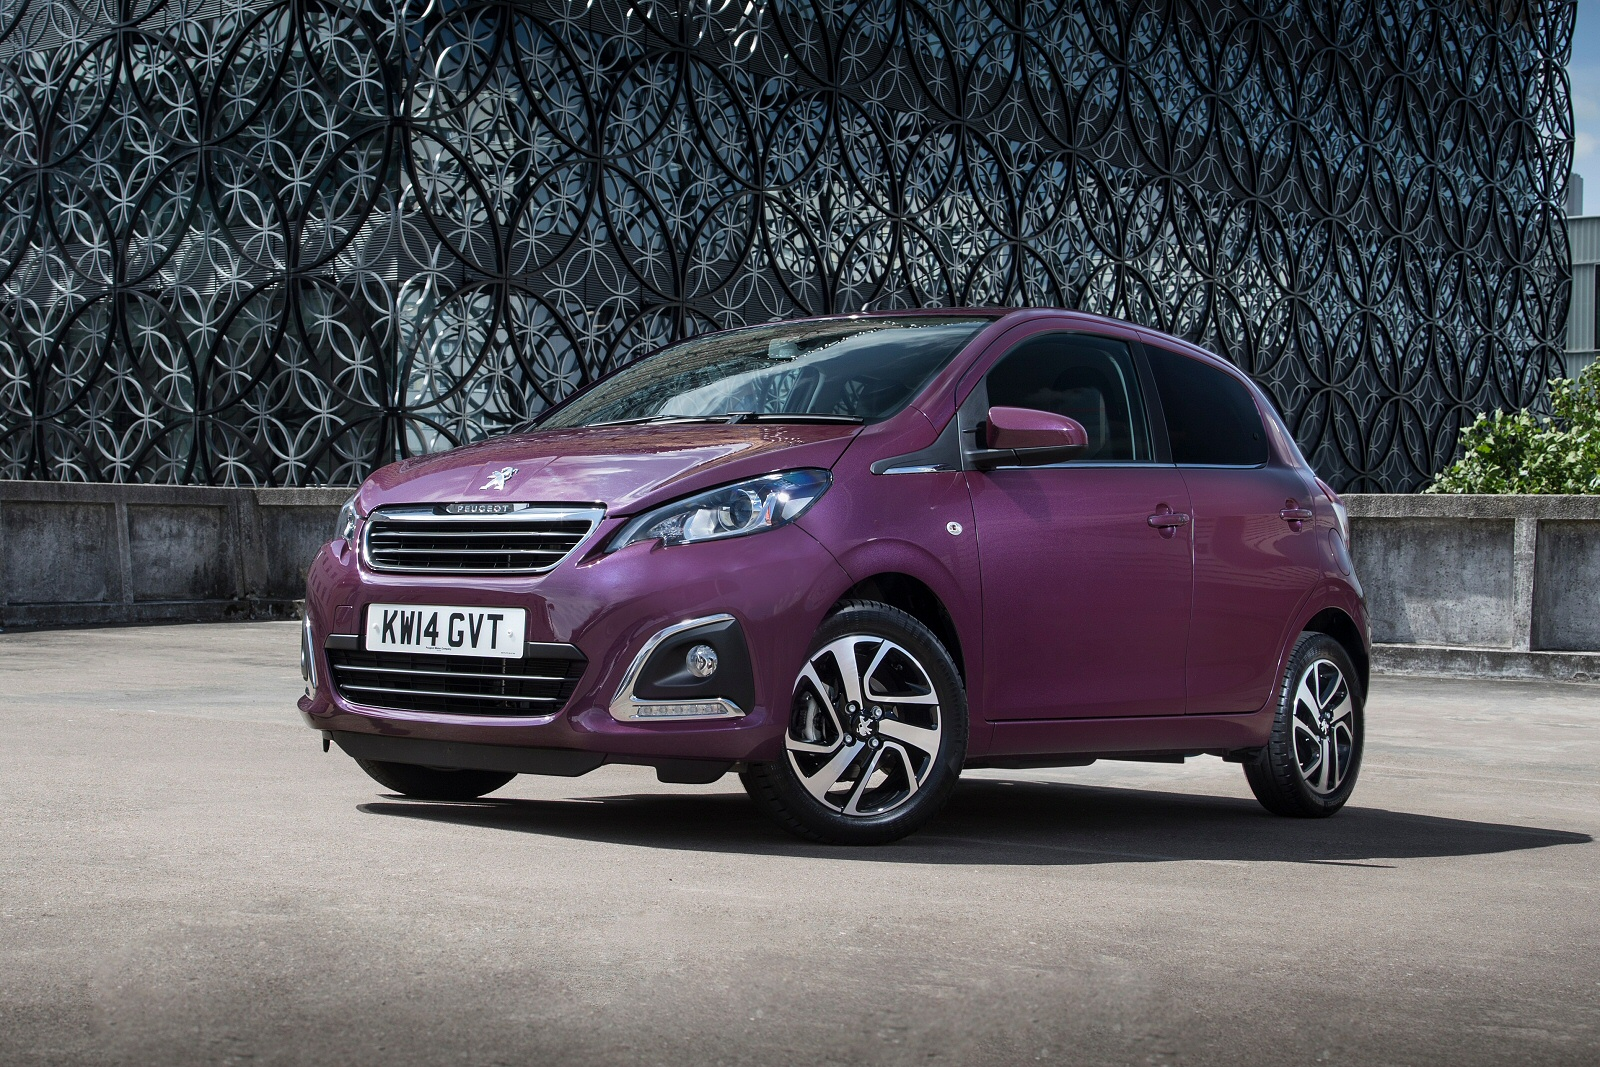 new peugeot 108 1 0 active 5dr 2 tronic petrol hatchback for sale bristol street. Black Bedroom Furniture Sets. Home Design Ideas